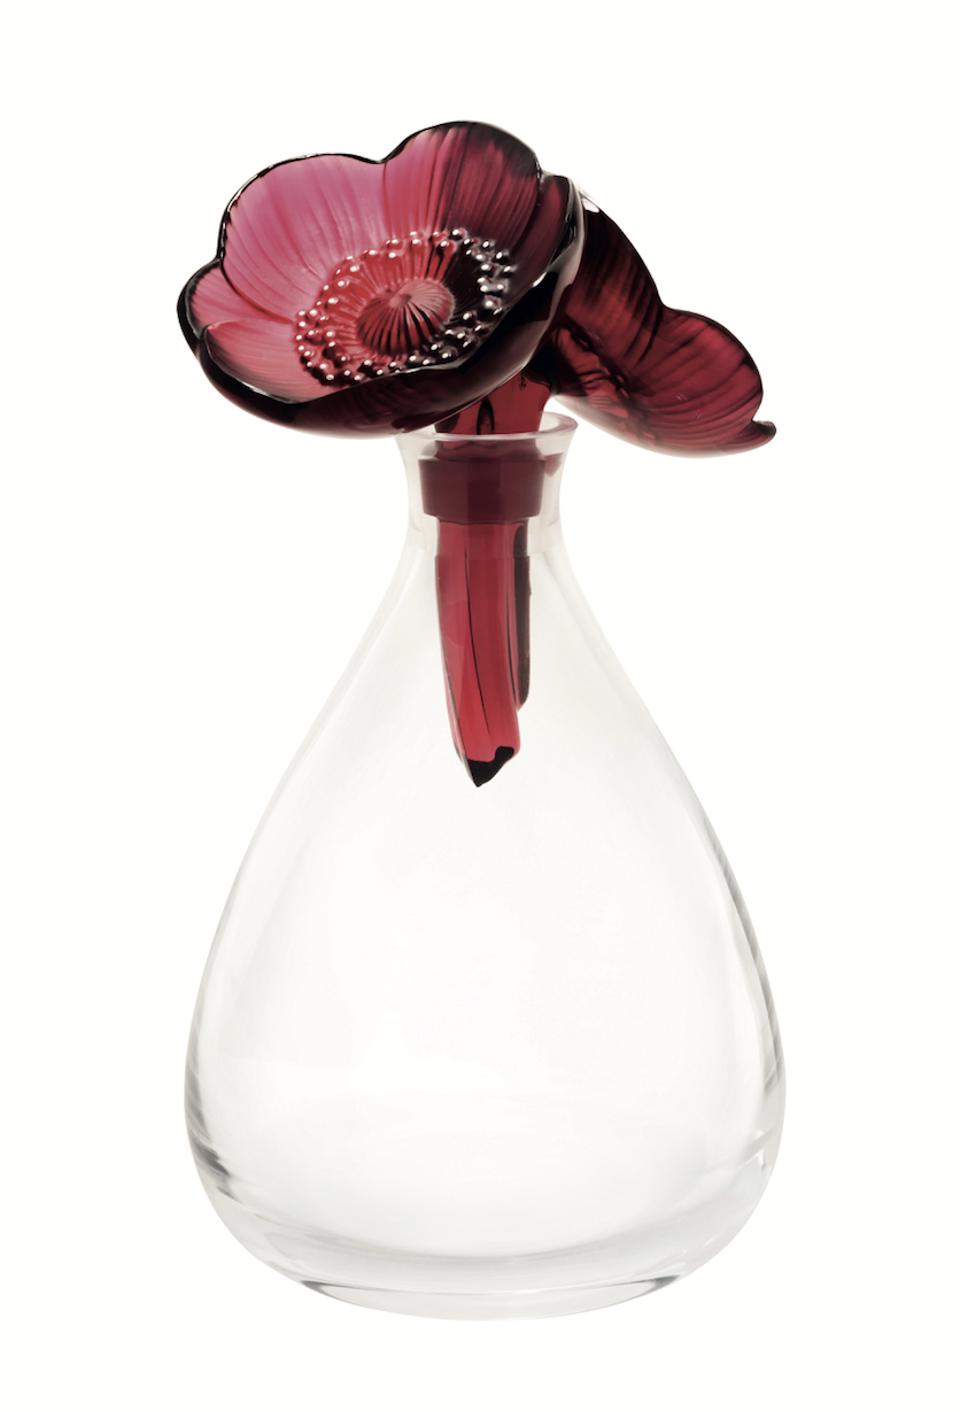 A Lalique crystal decanter with floral motifs.